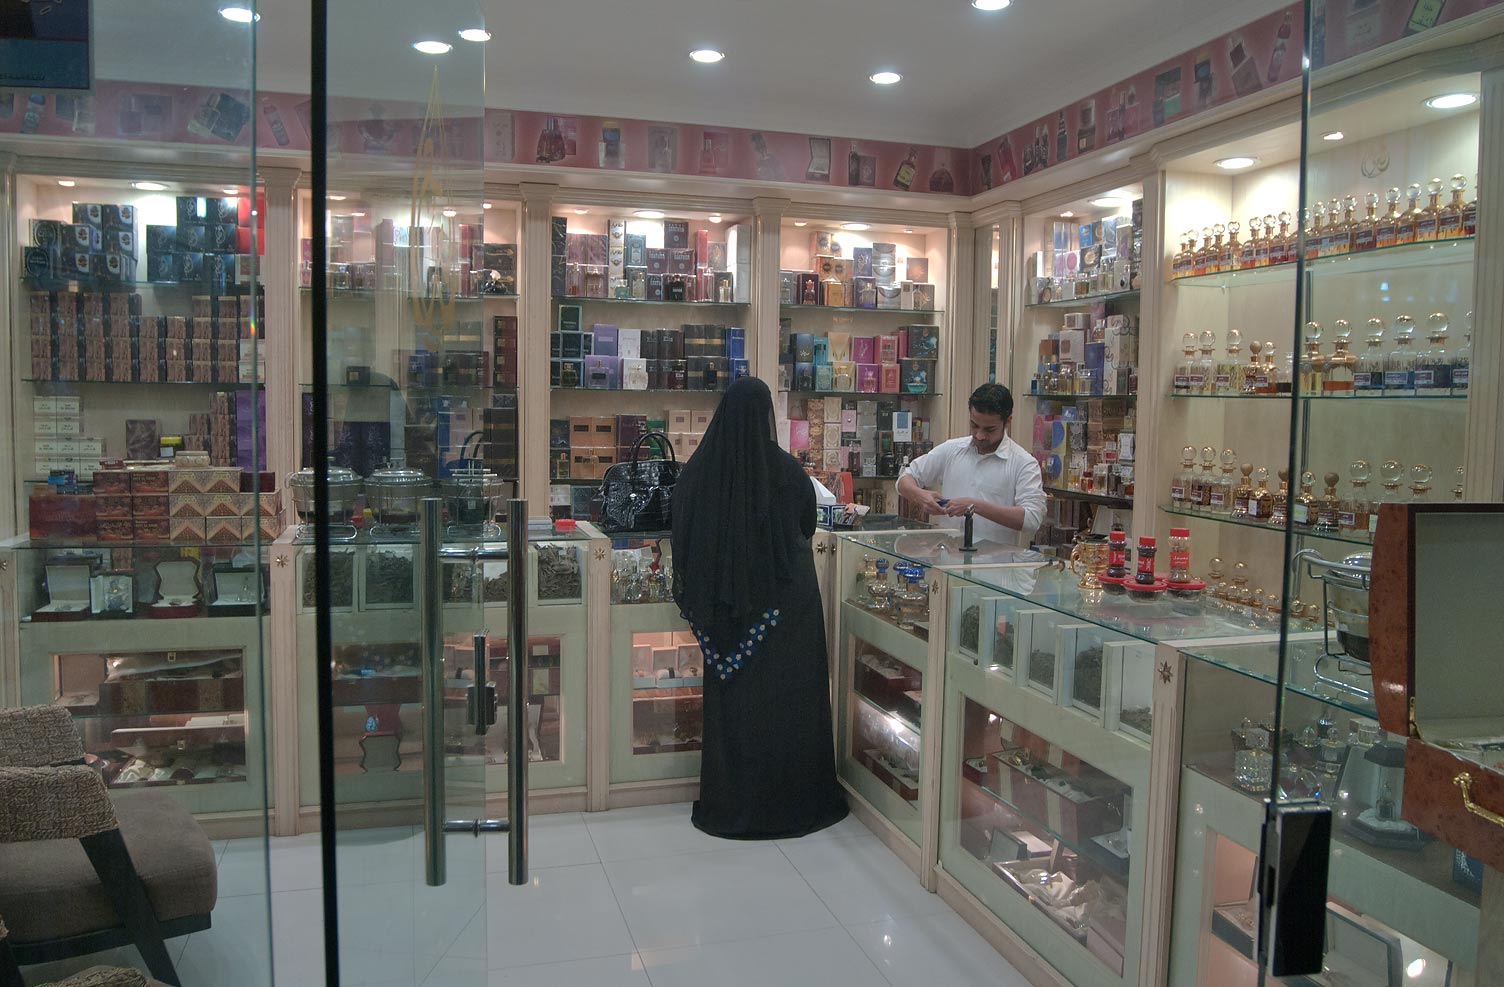 A woman shopping for perfumes in Souq Waqif (Old Market). Doha, Qatar